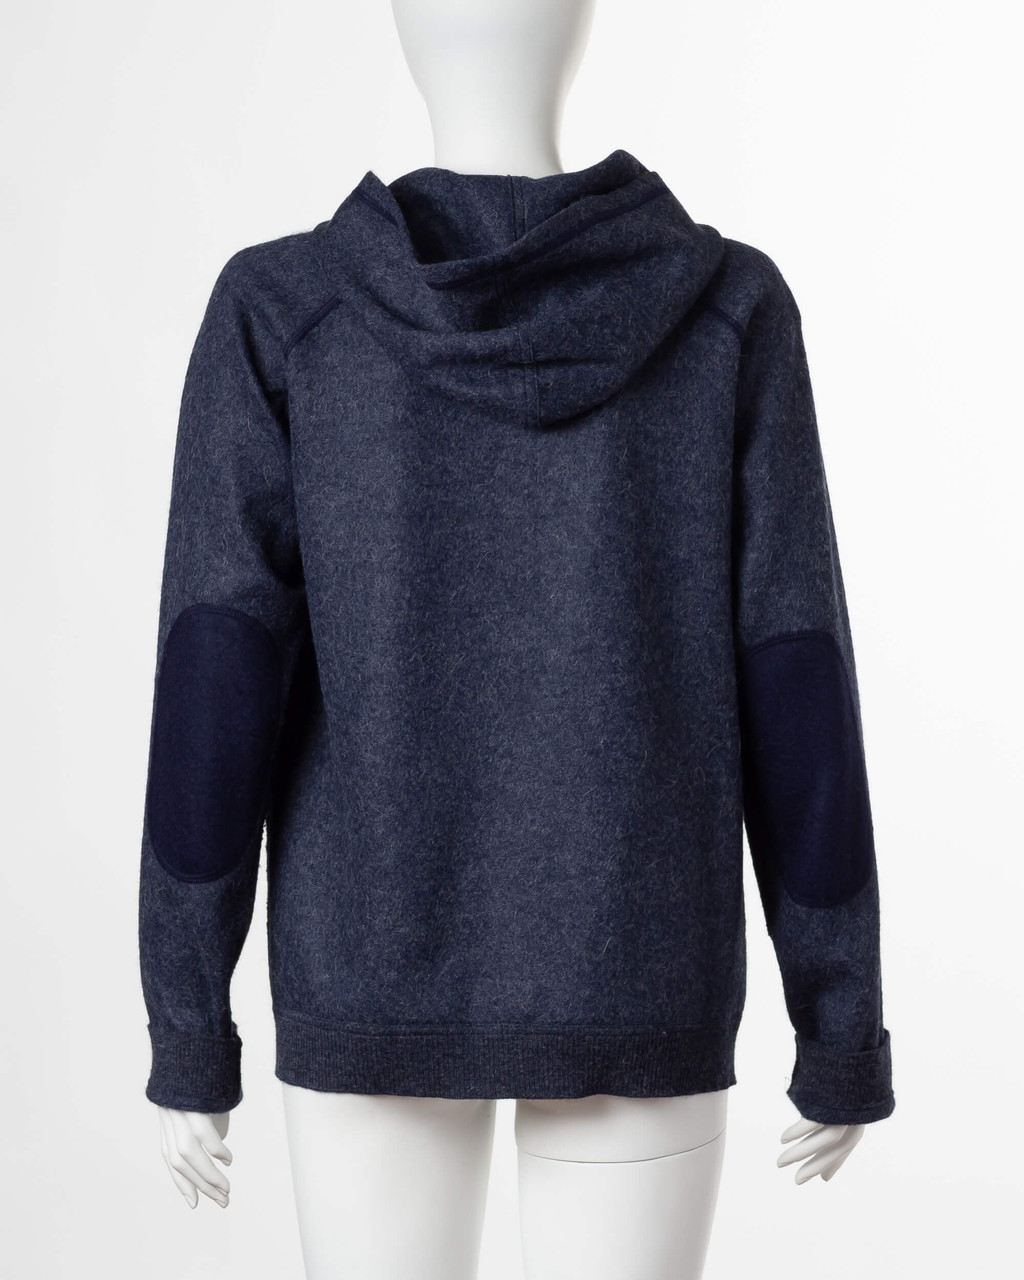 Alicia Adams Alpaca Verbier Zip Up For Women, alpaca sweater hoodie for women, alpaca sweater womens, charcoal grey alpaca zip up hoodie